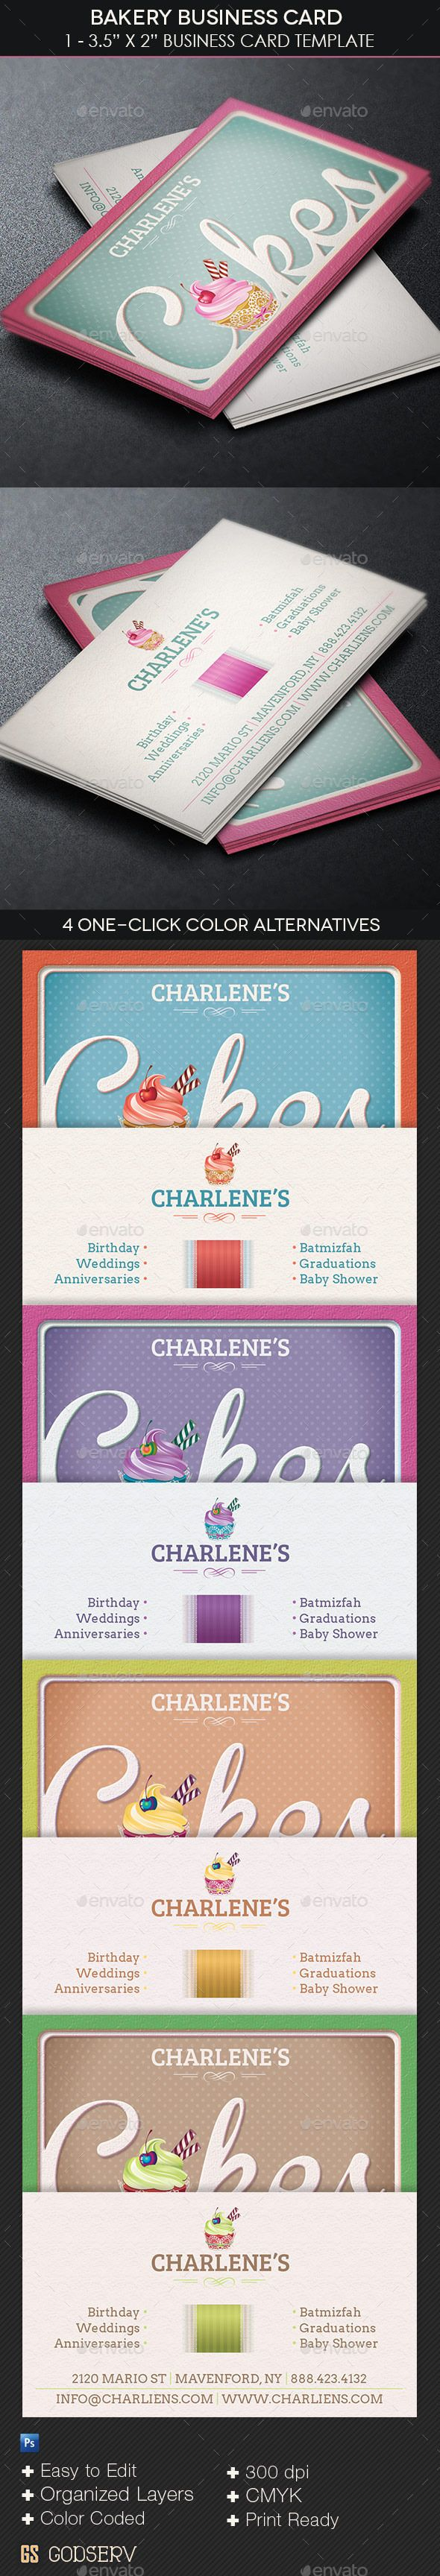 62 Best Business Cards Images On Pinterest Flyer Template Beer